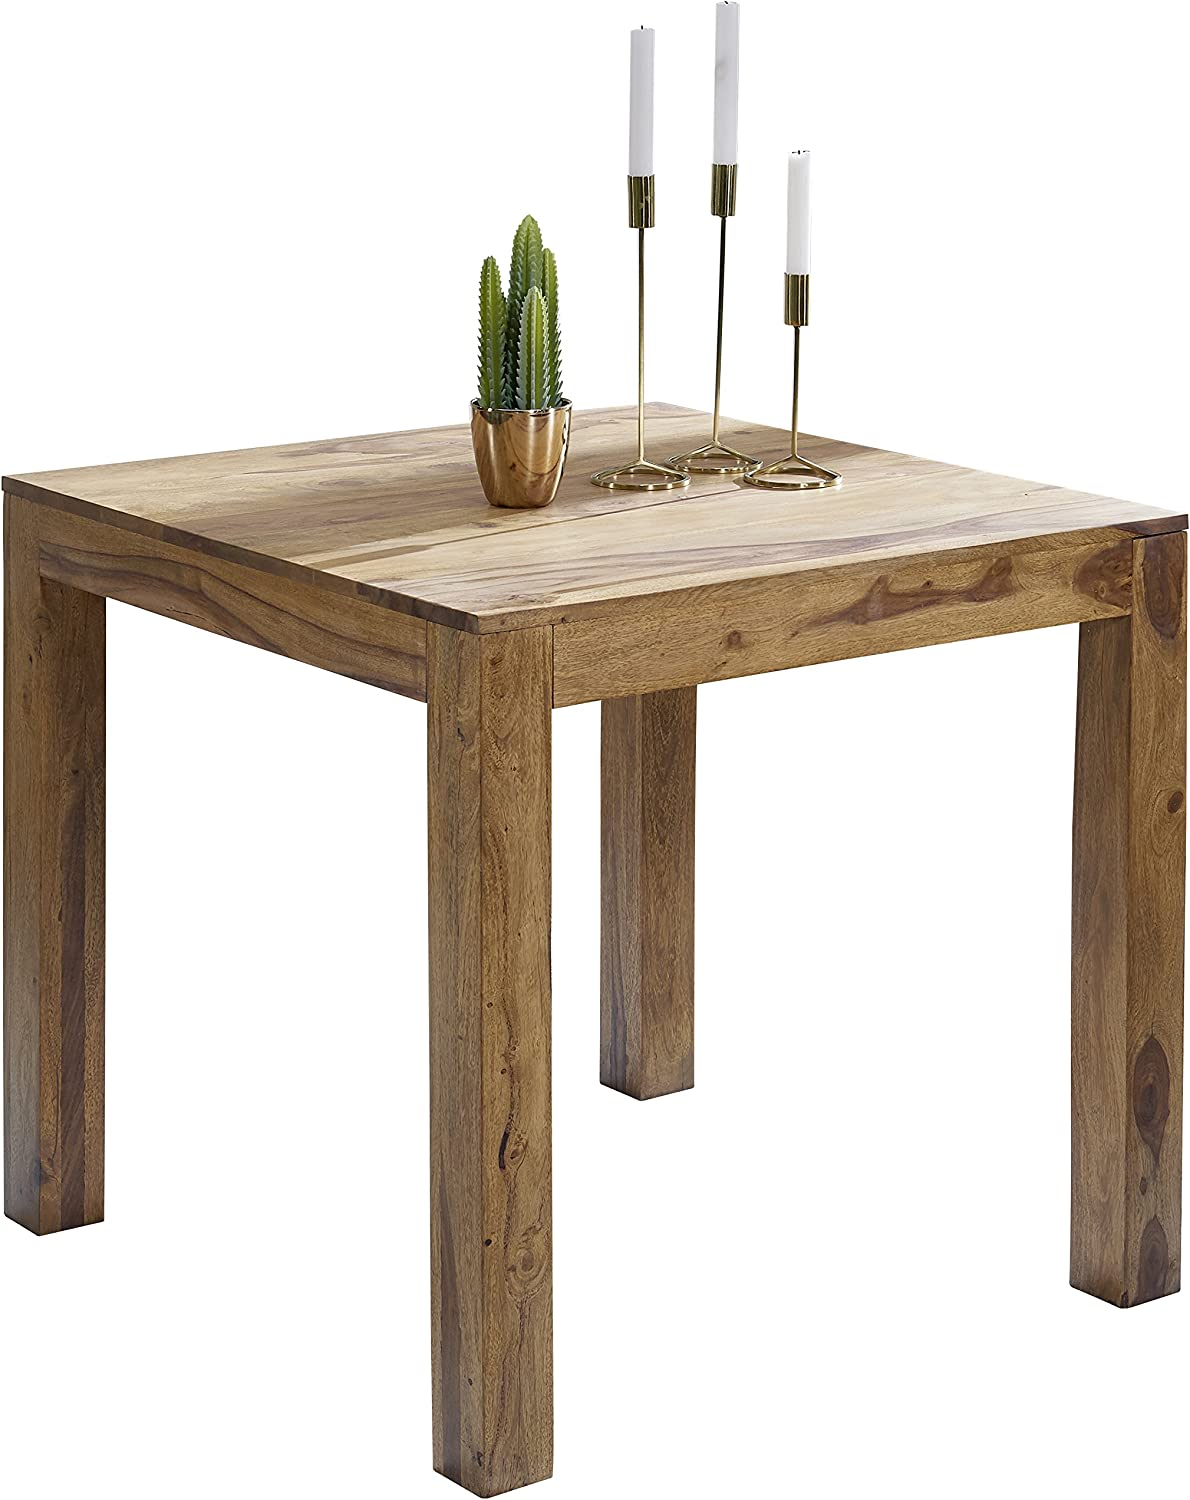 Wohnling Wl1 319 Square Sheesham Solid Wood Dining Table 80 X 80 Cm Amazon Co Uk Kitchen Home